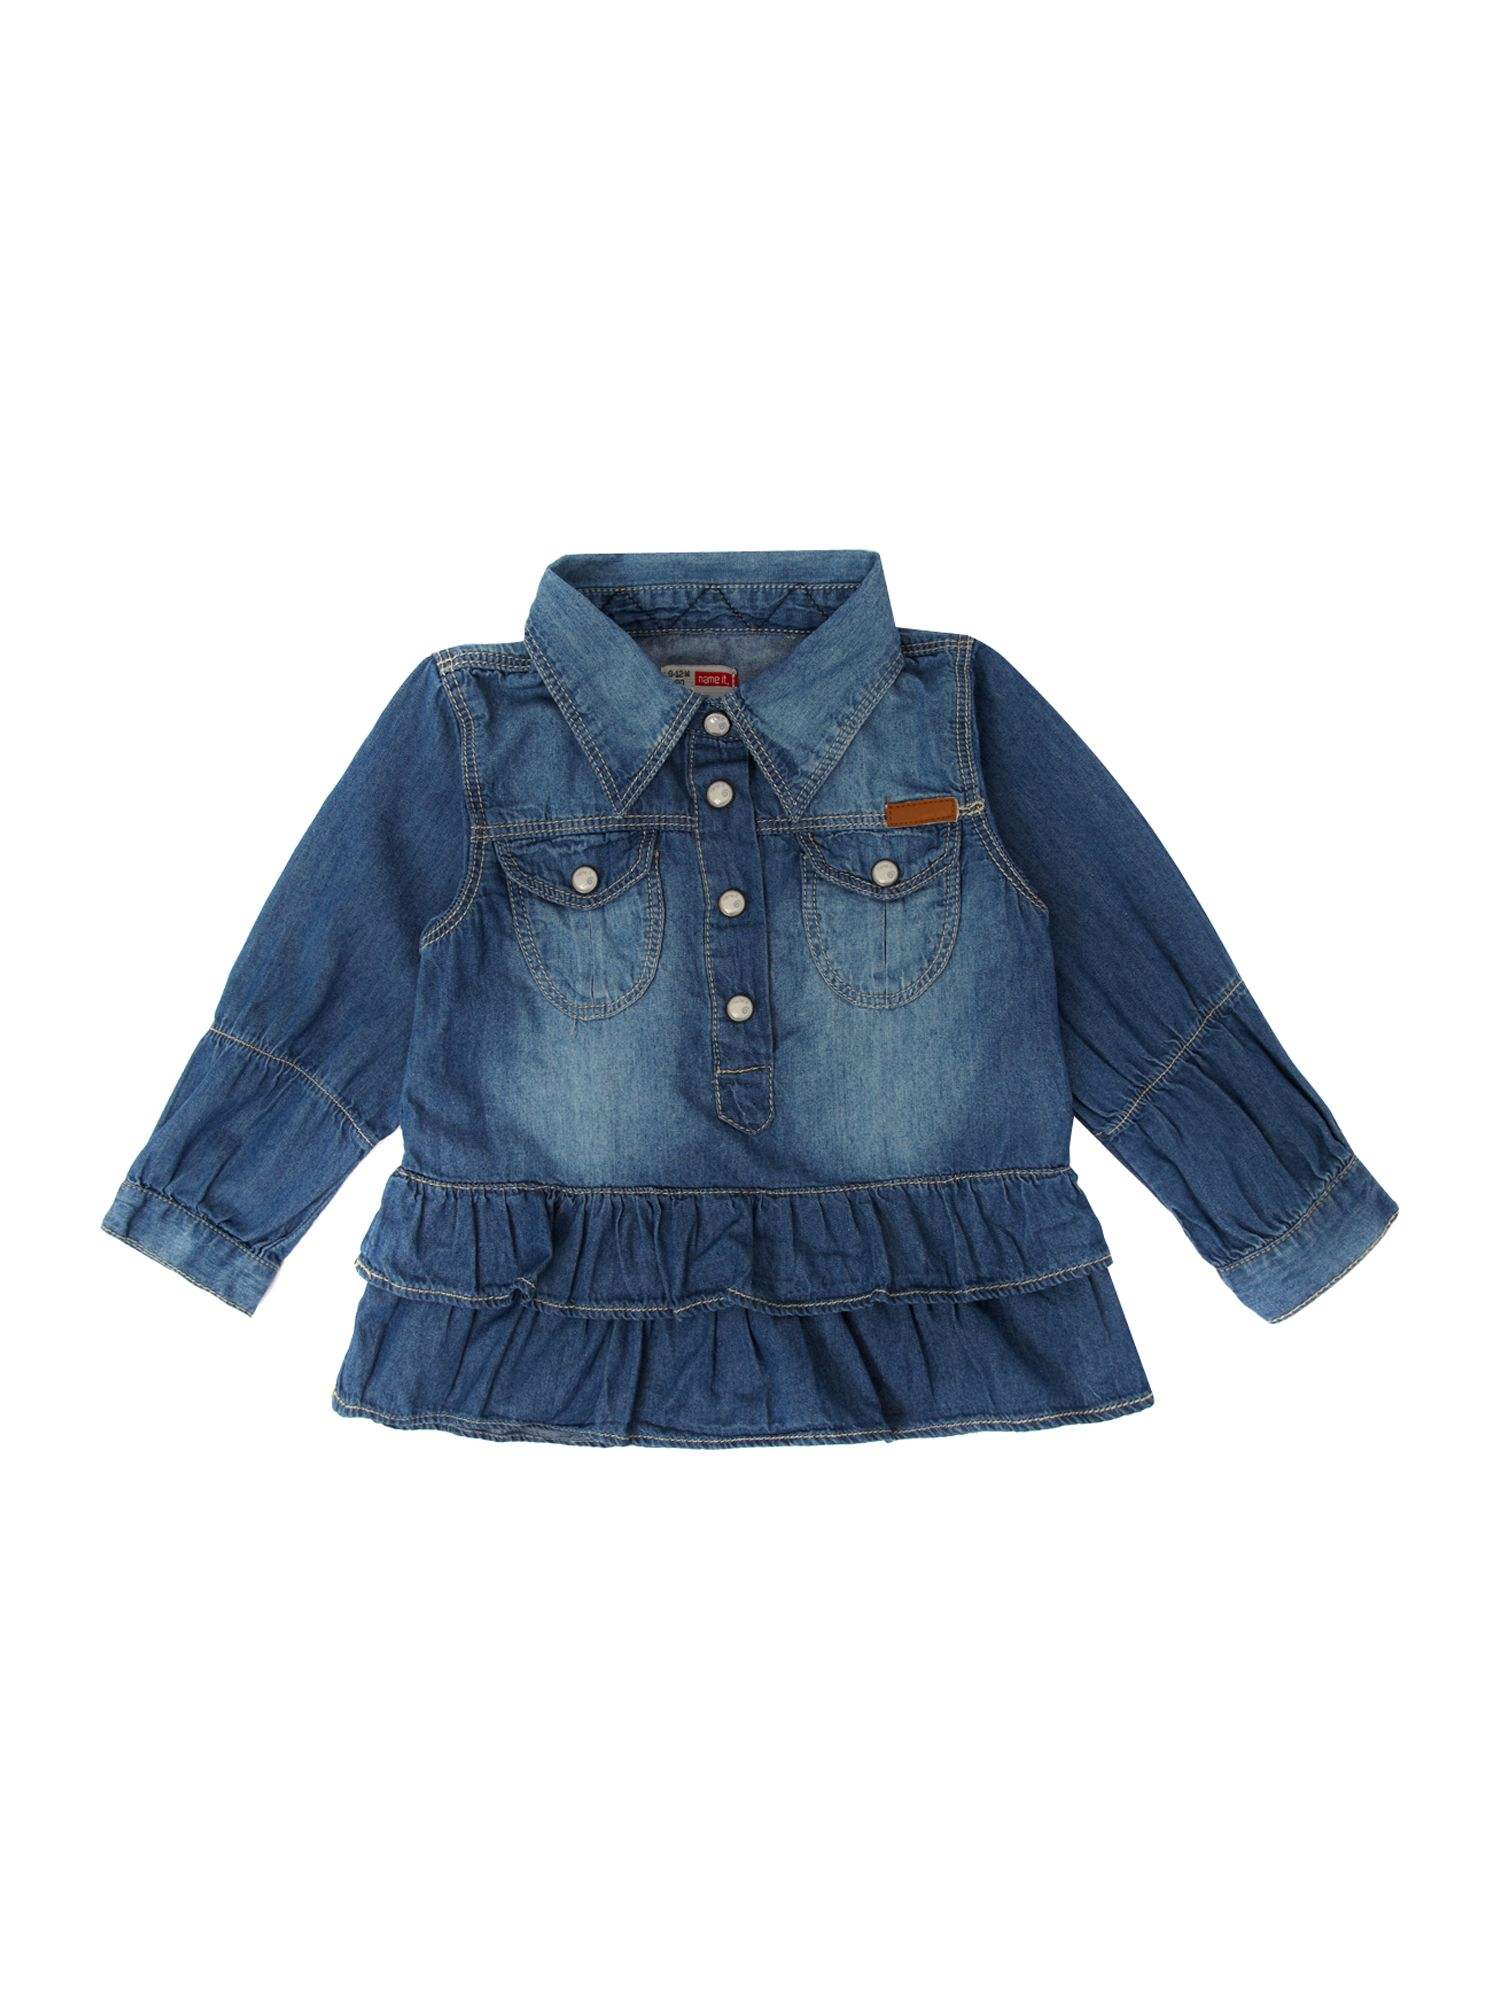 Long-sleeved frill denim shirt